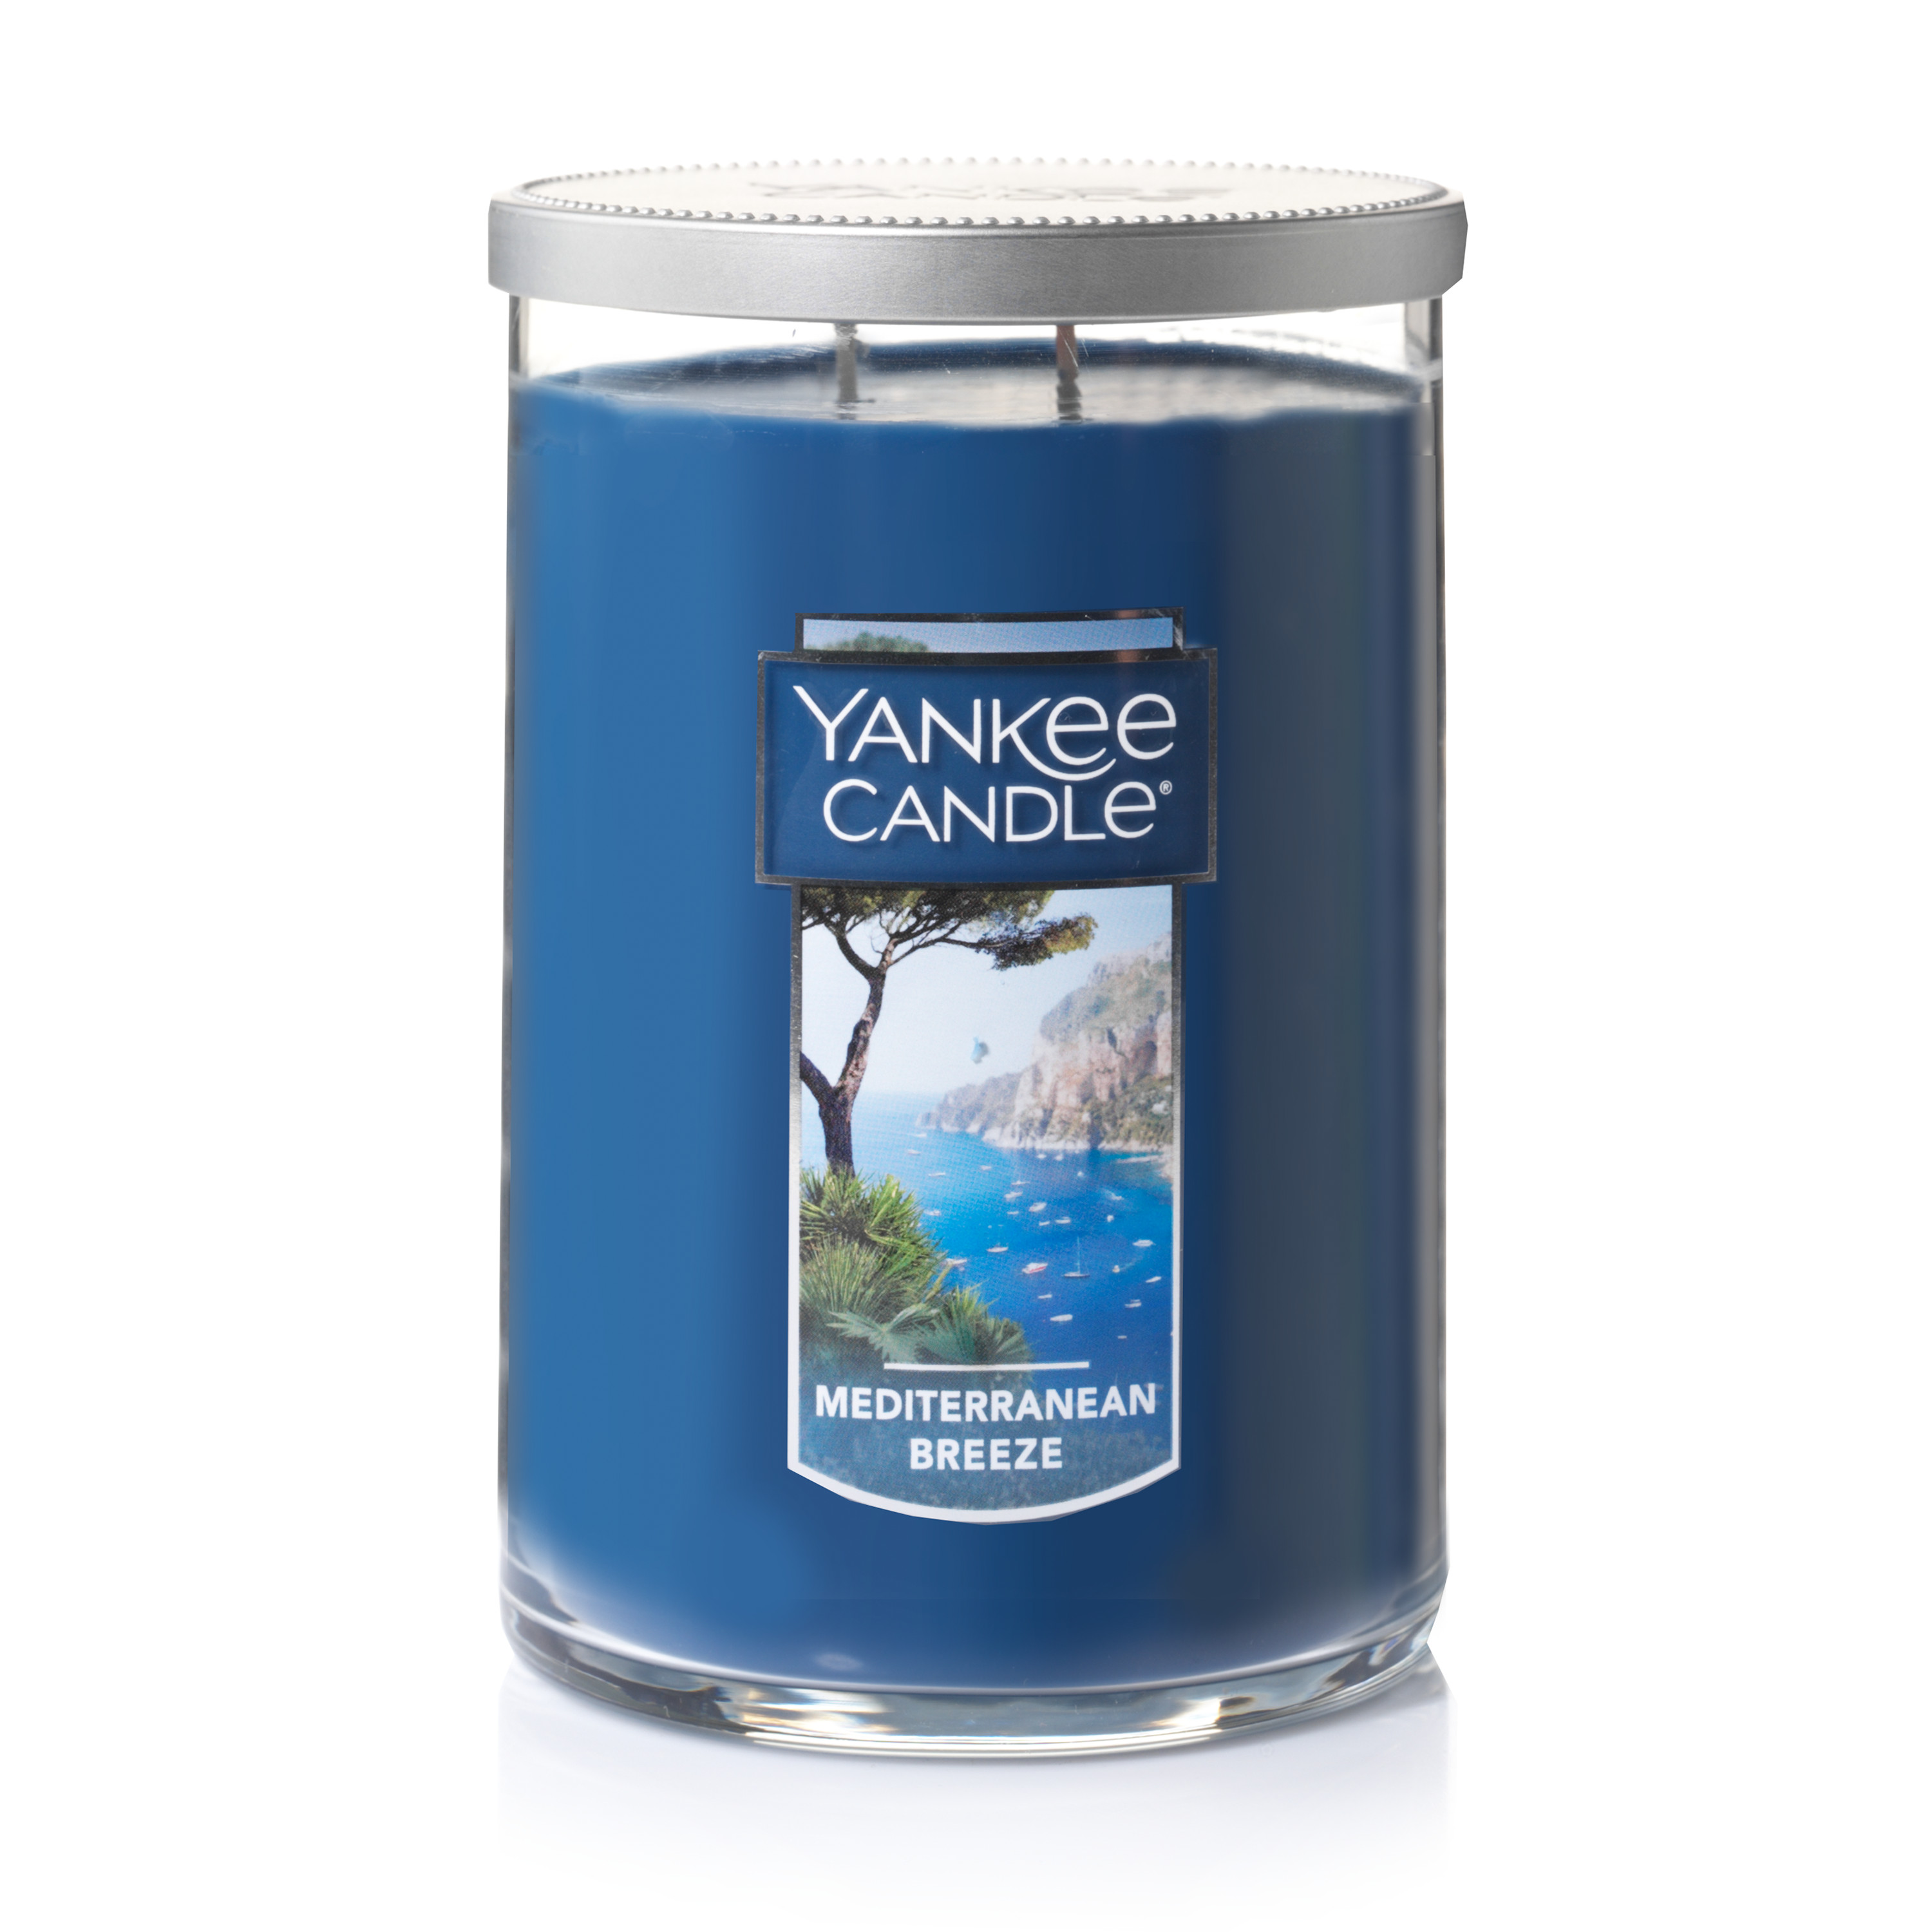 Yankee Candle Large 2-Wick Tumbler Scented Candle, Mediterranean Breeze